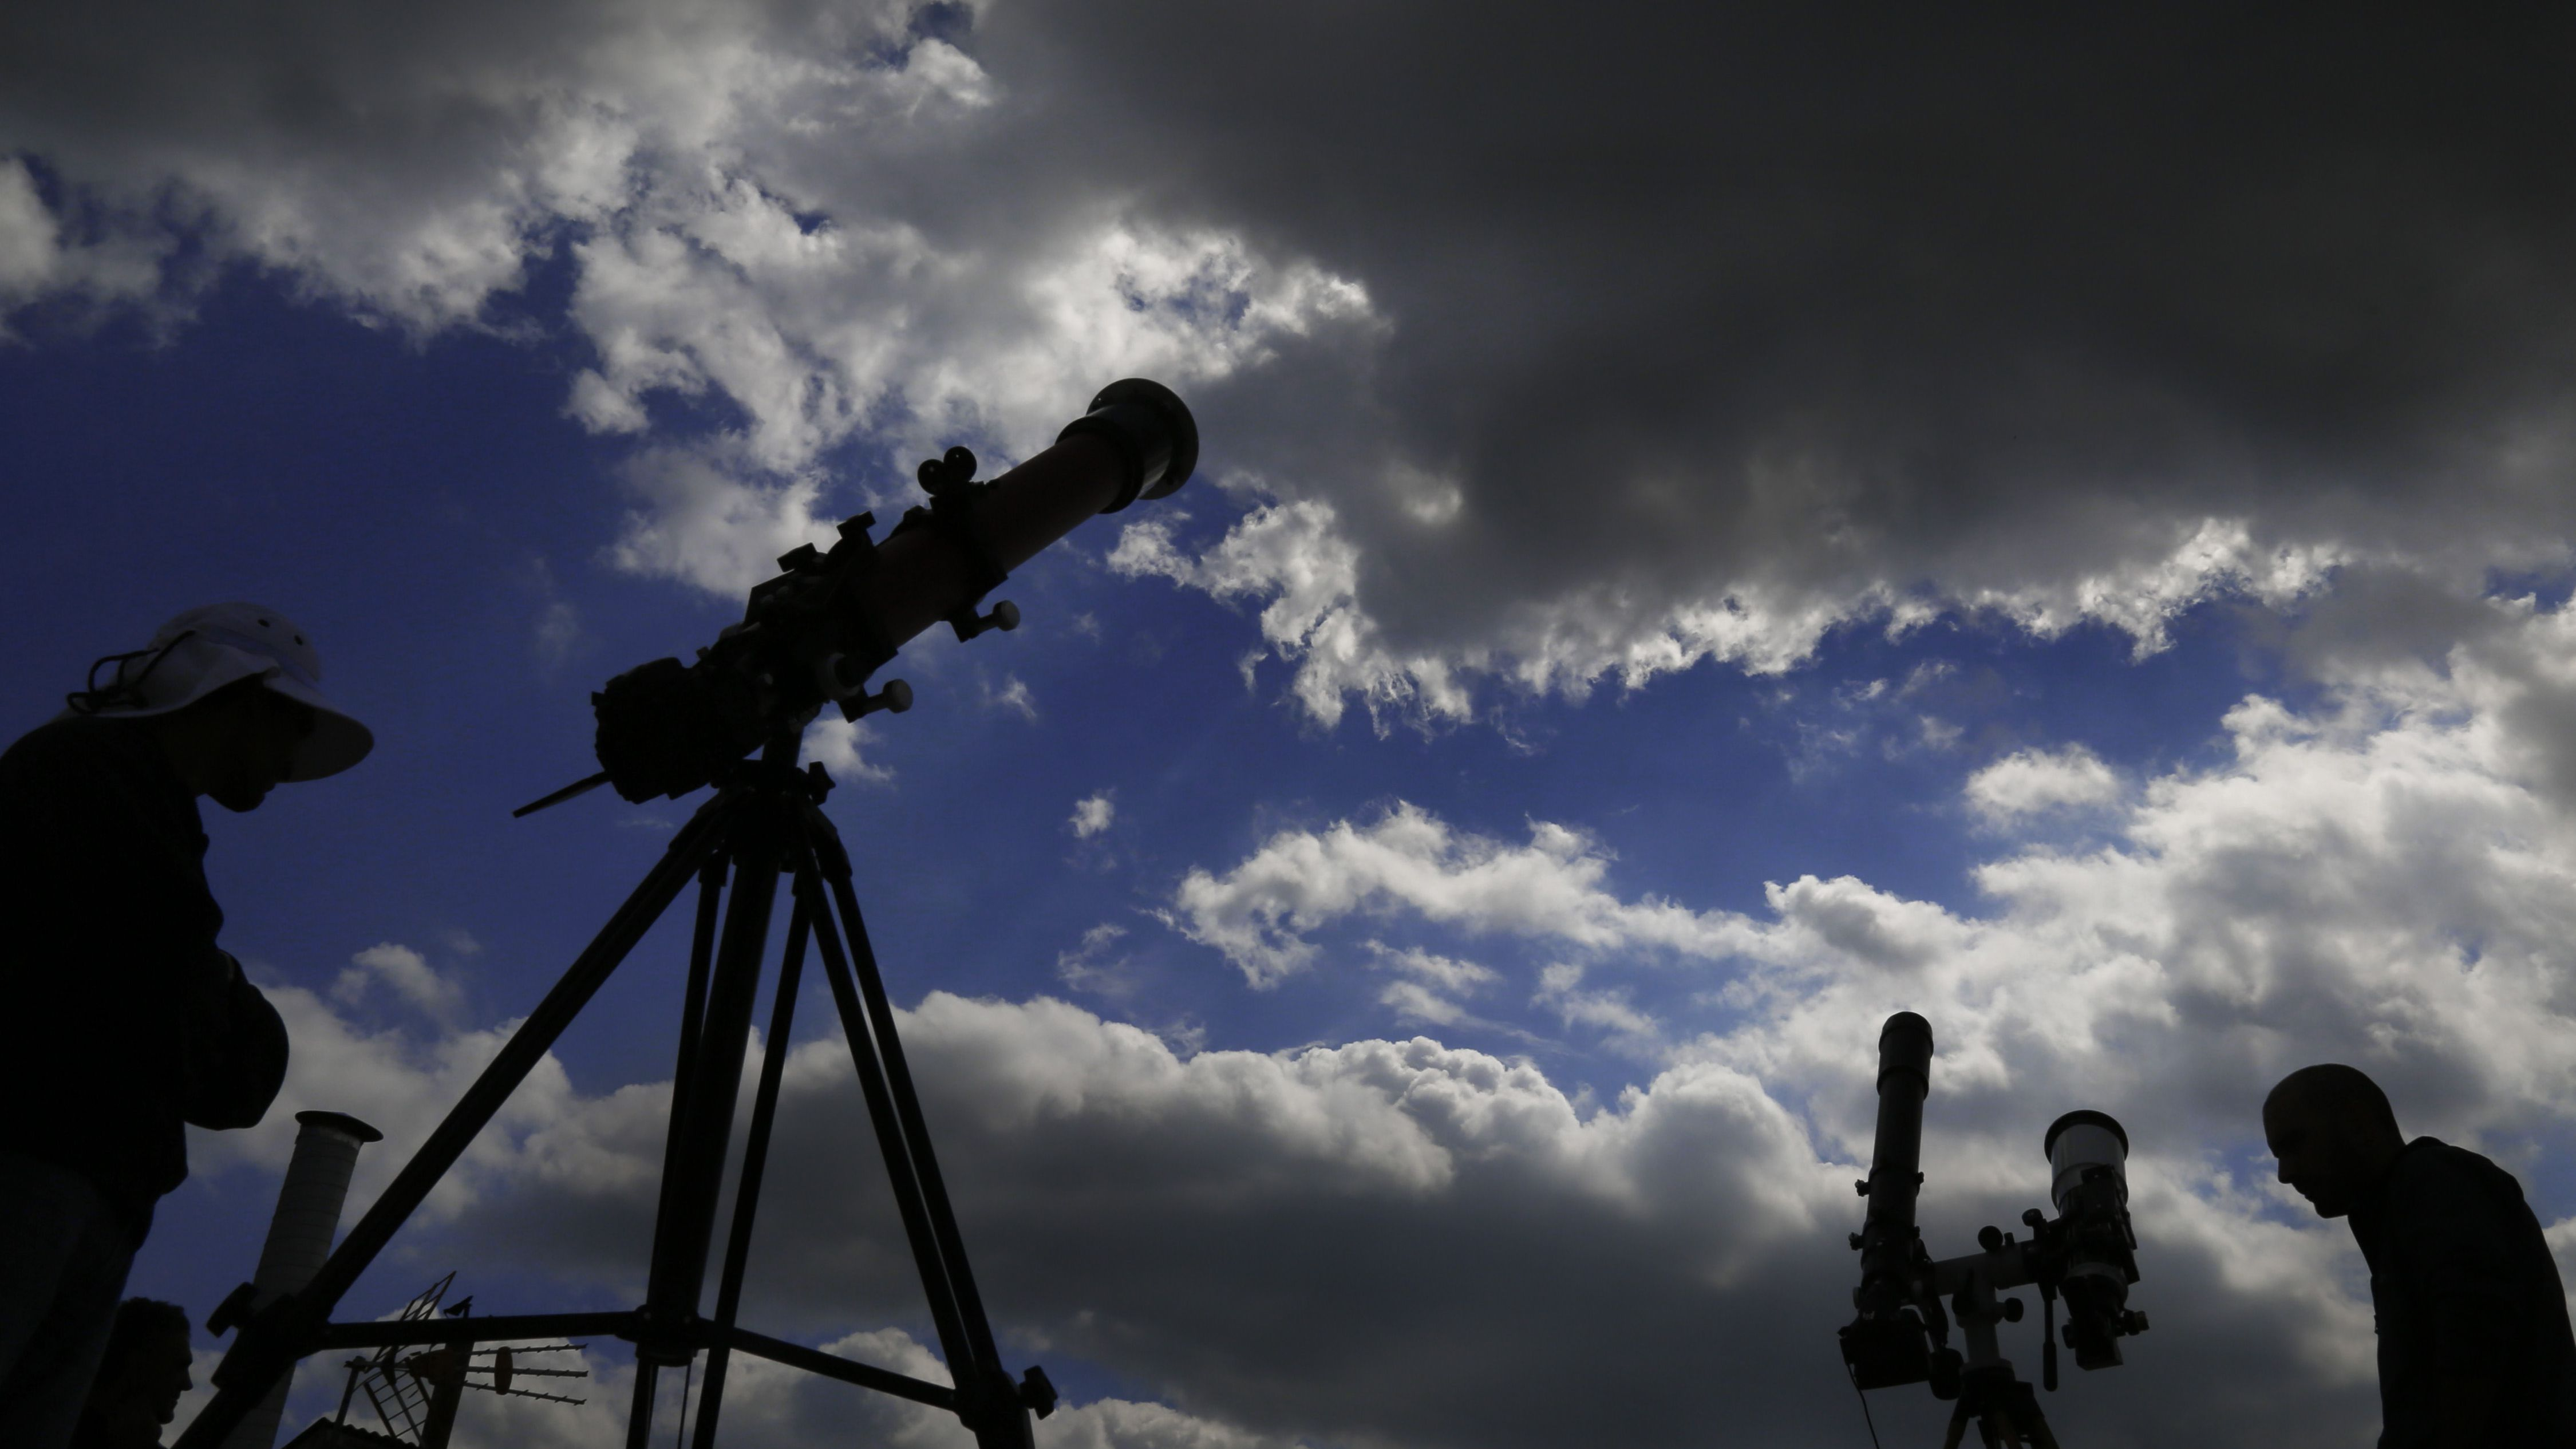 Two men sets up a telescopes as they watch an eclipse of the sun at capital Nicosia, Cyprus, Friday, March 20, 2015. An eclipse is darkening parts of Europe on Friday in a rare solar event that won't be repeated for more than a decade.